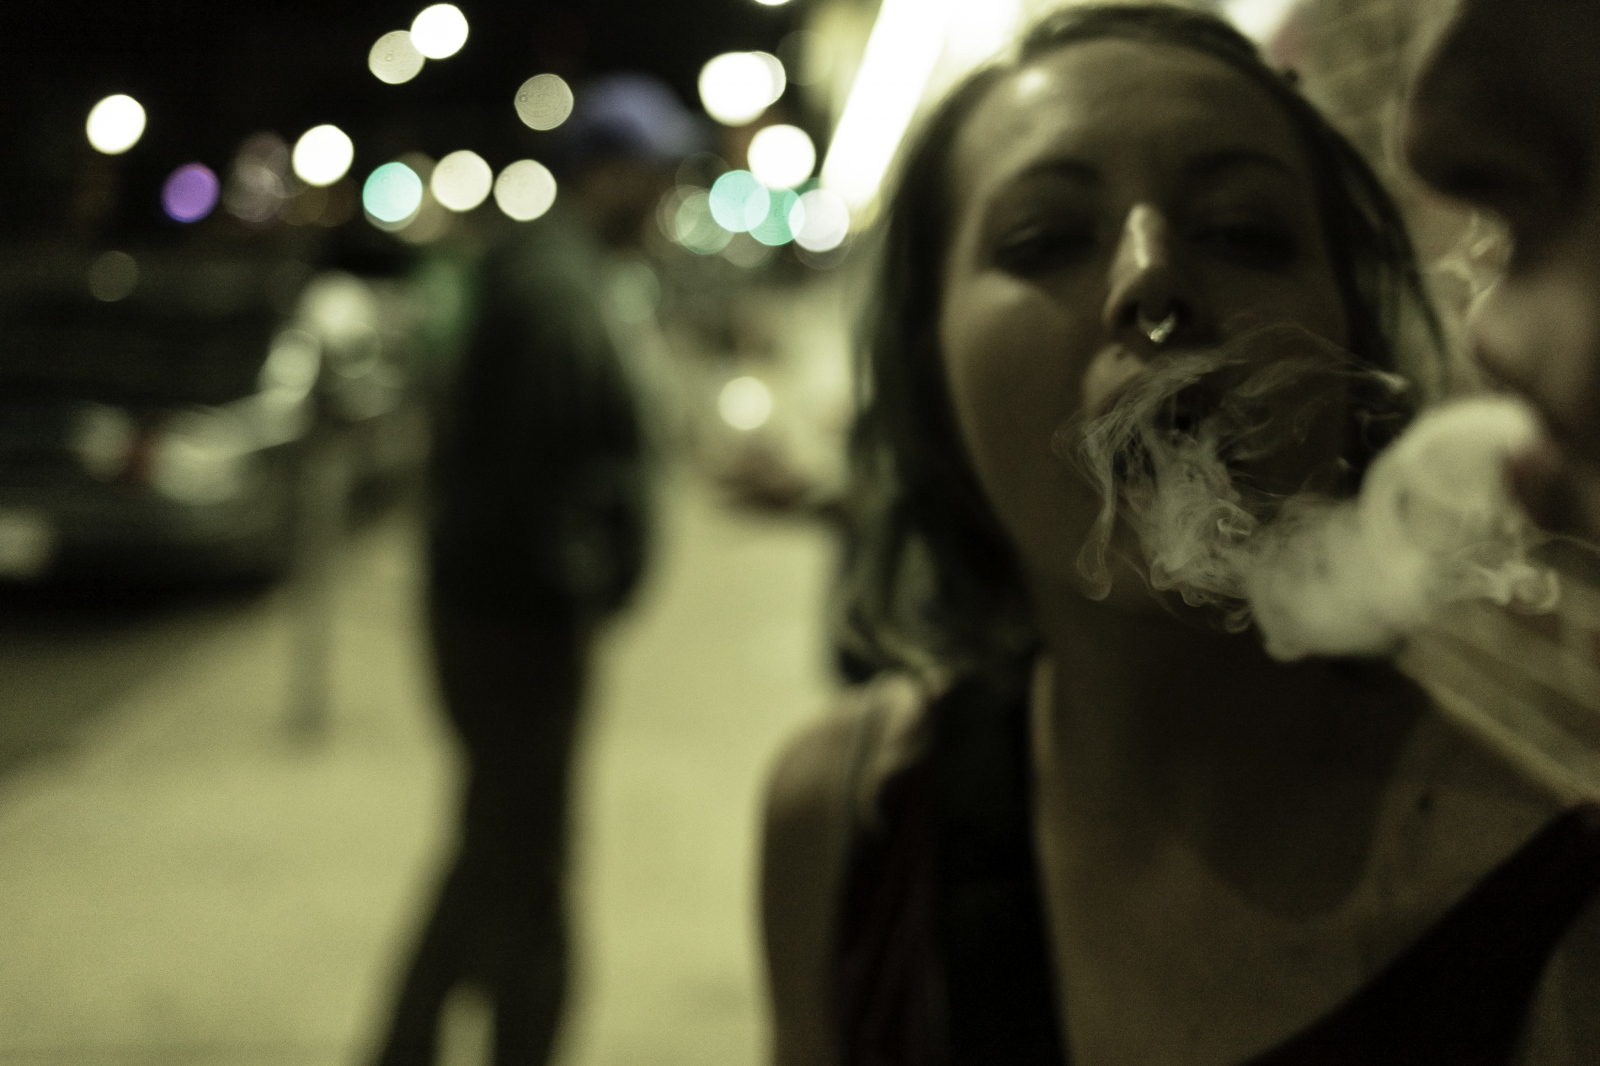 A couple of girlfriends share a marijuana joint outside of a nightclub in Colfax Av.